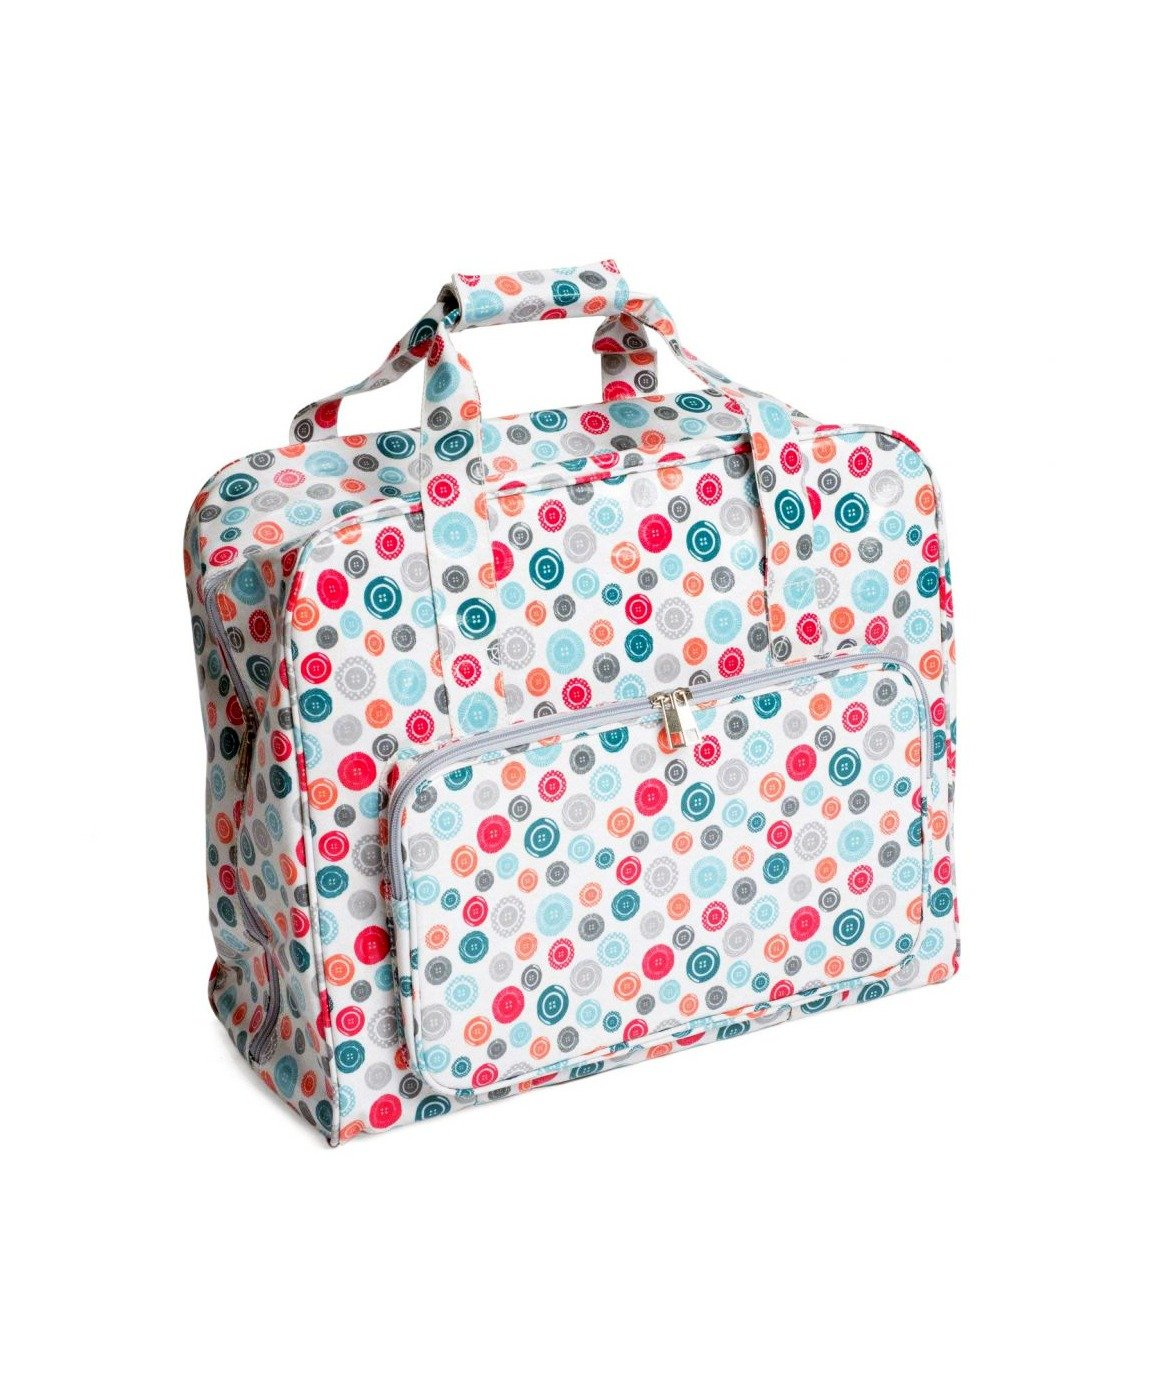 Sew Easy Sewing Machine Carry Bag Colourful Buttons Scattered Buttons Tote Trolley Bag Craft Pouch Handles